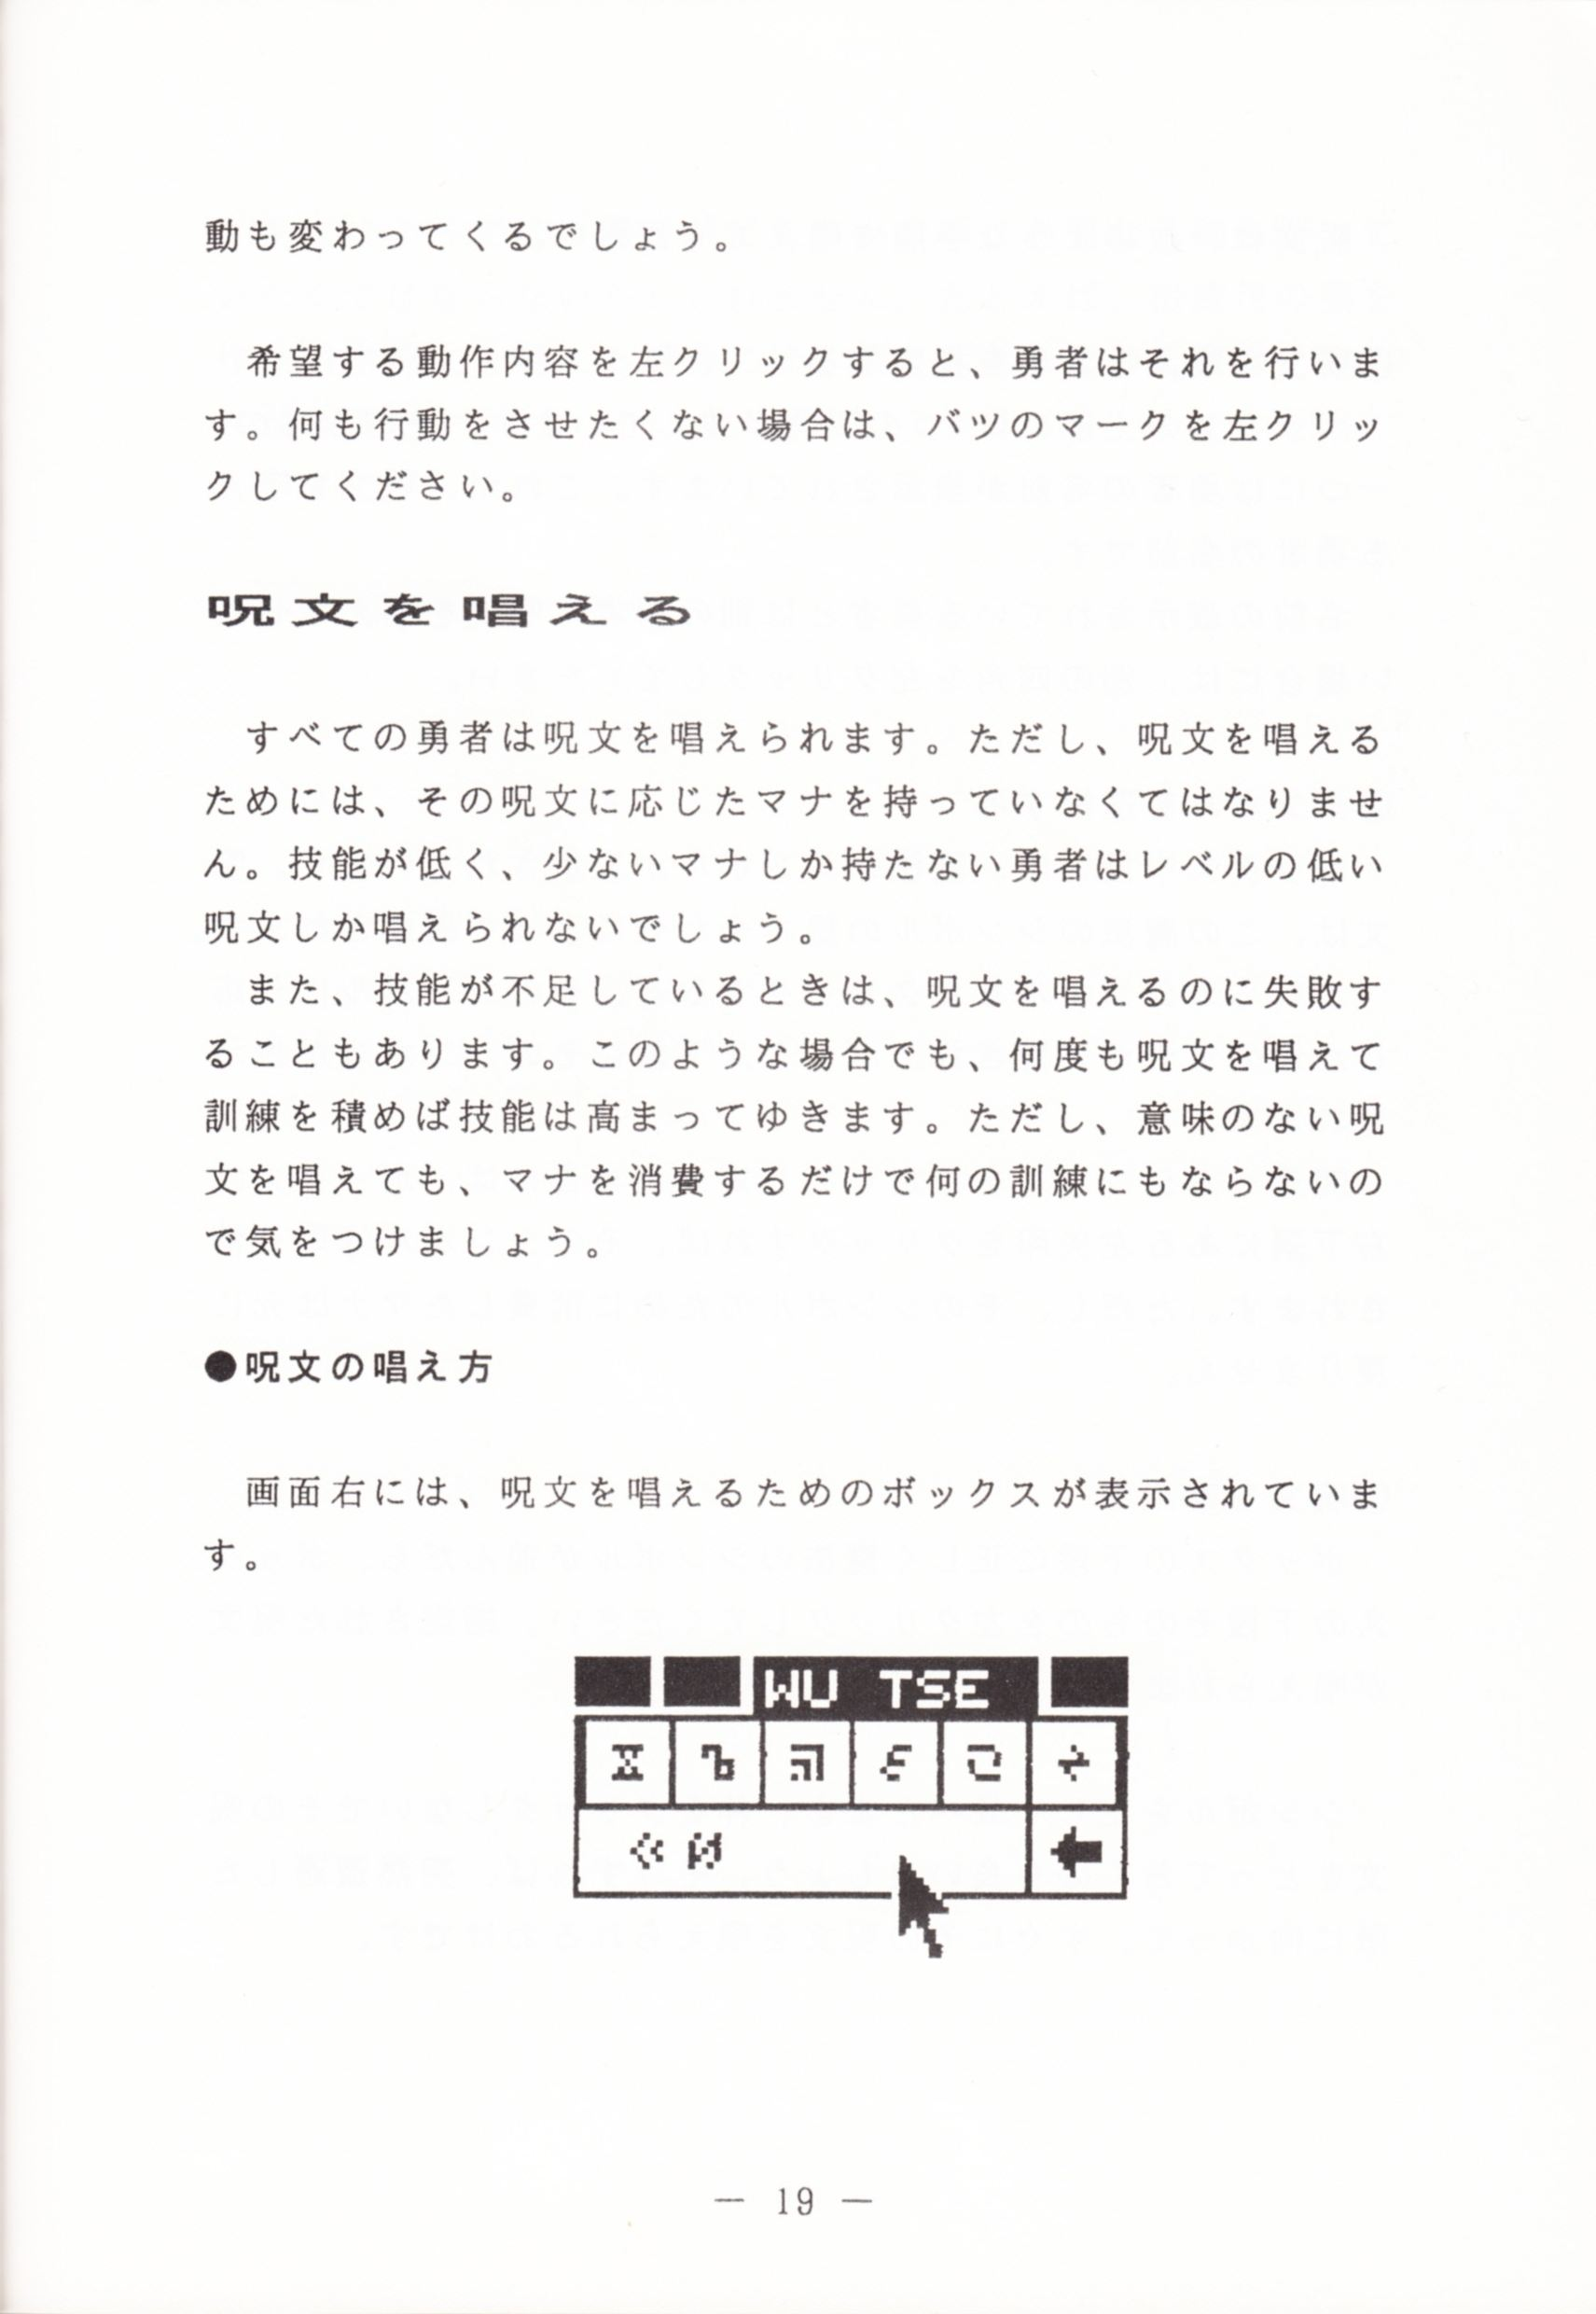 Game - Dungeon Master - JP - FM Towns - Operations Guide - Page 021 - Scan